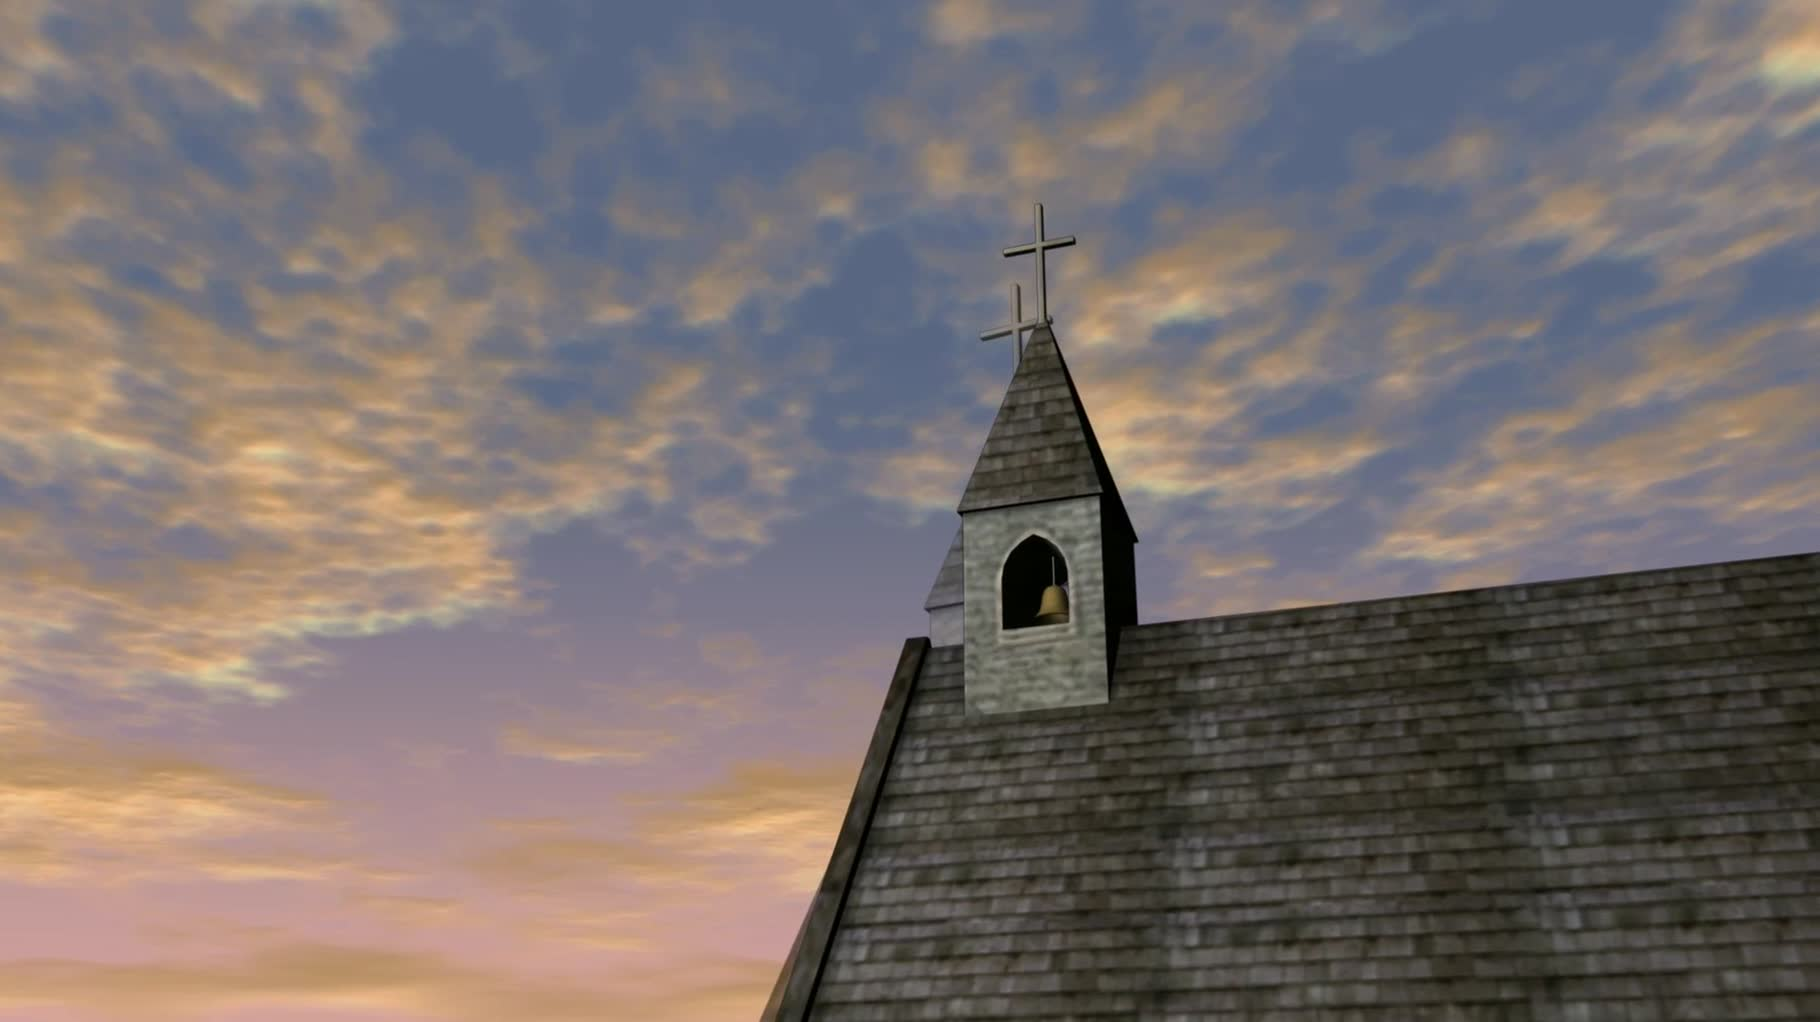 Church TimeLapse